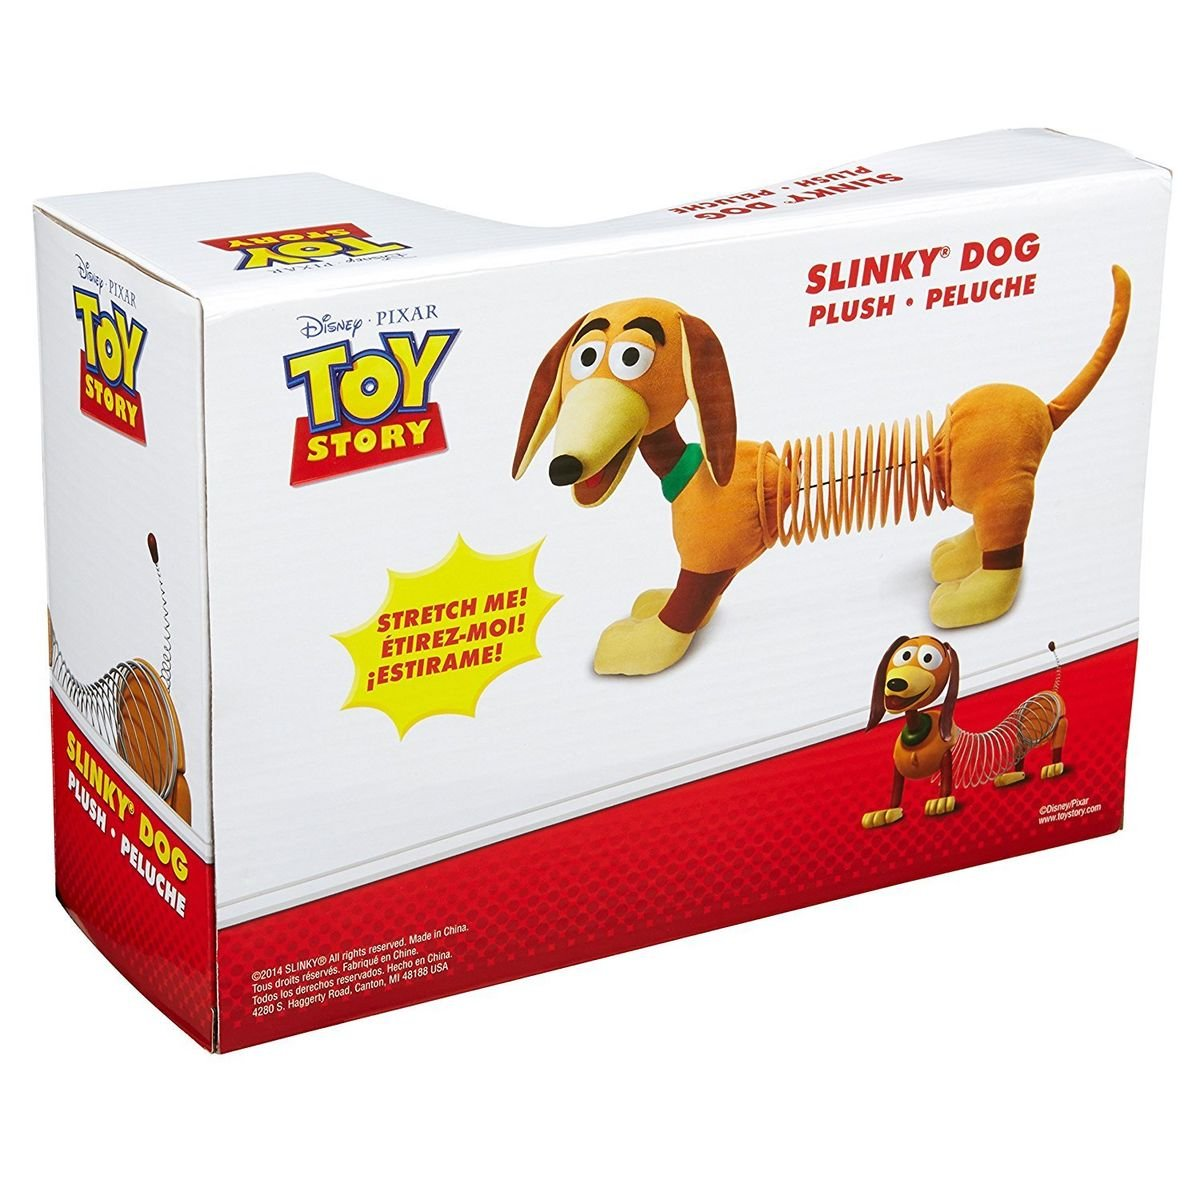 Amazon.com: Toy Story Slinky Dog Pixar Disney Movie Character Soft Kids Toddlers Plush New, Rocket Science Toys, 2018: Toys & Games